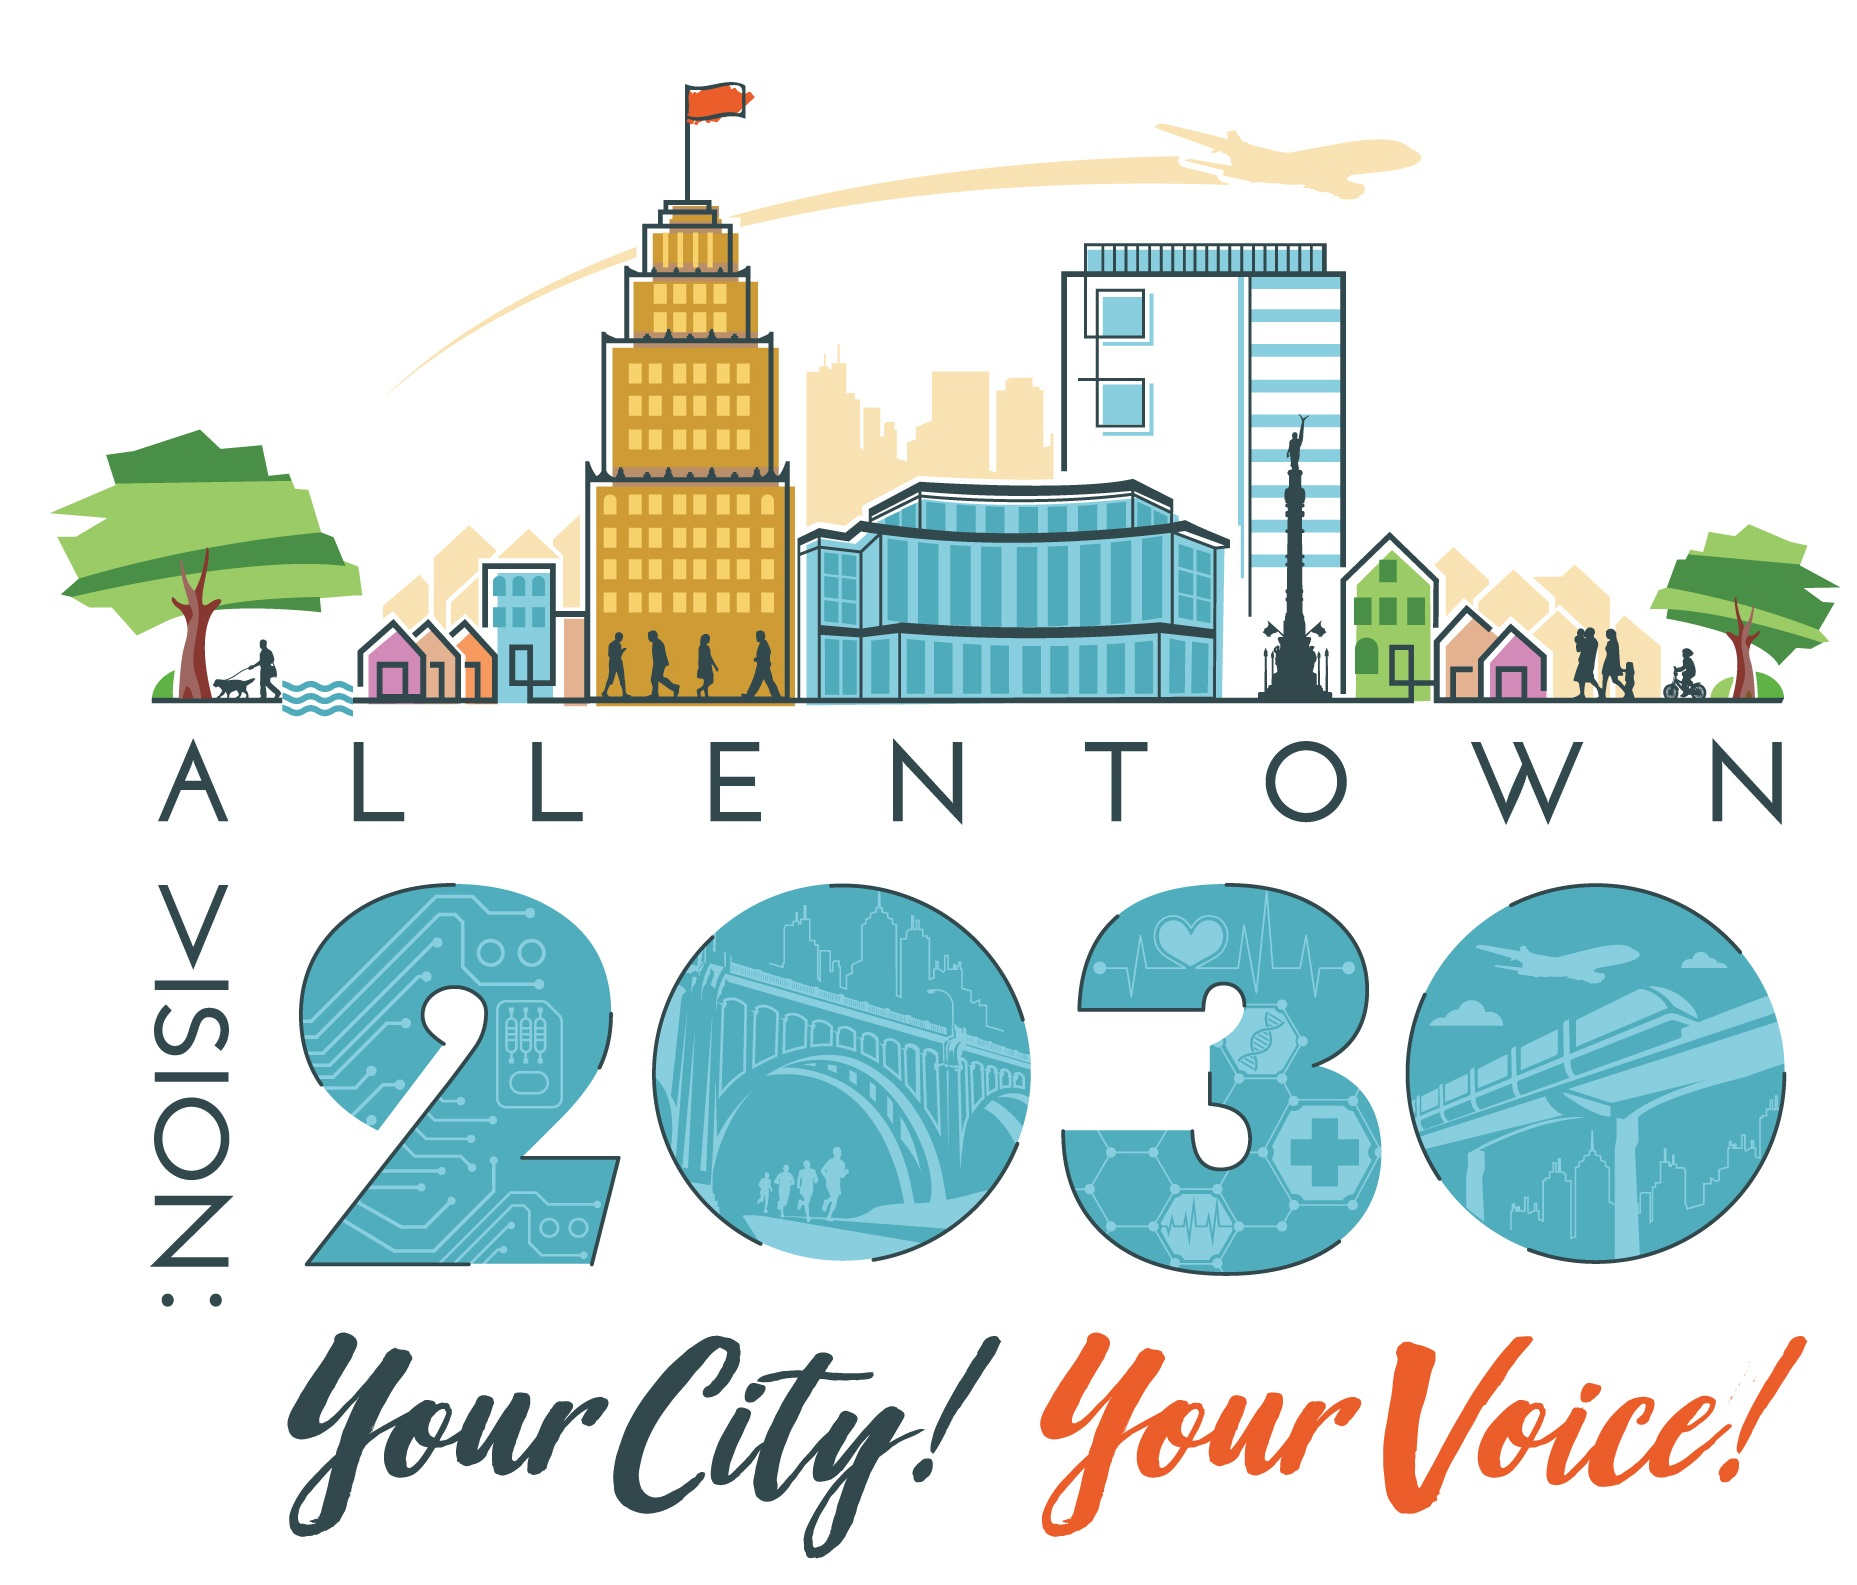 Click to go to the Allentown Vision 2030 website.